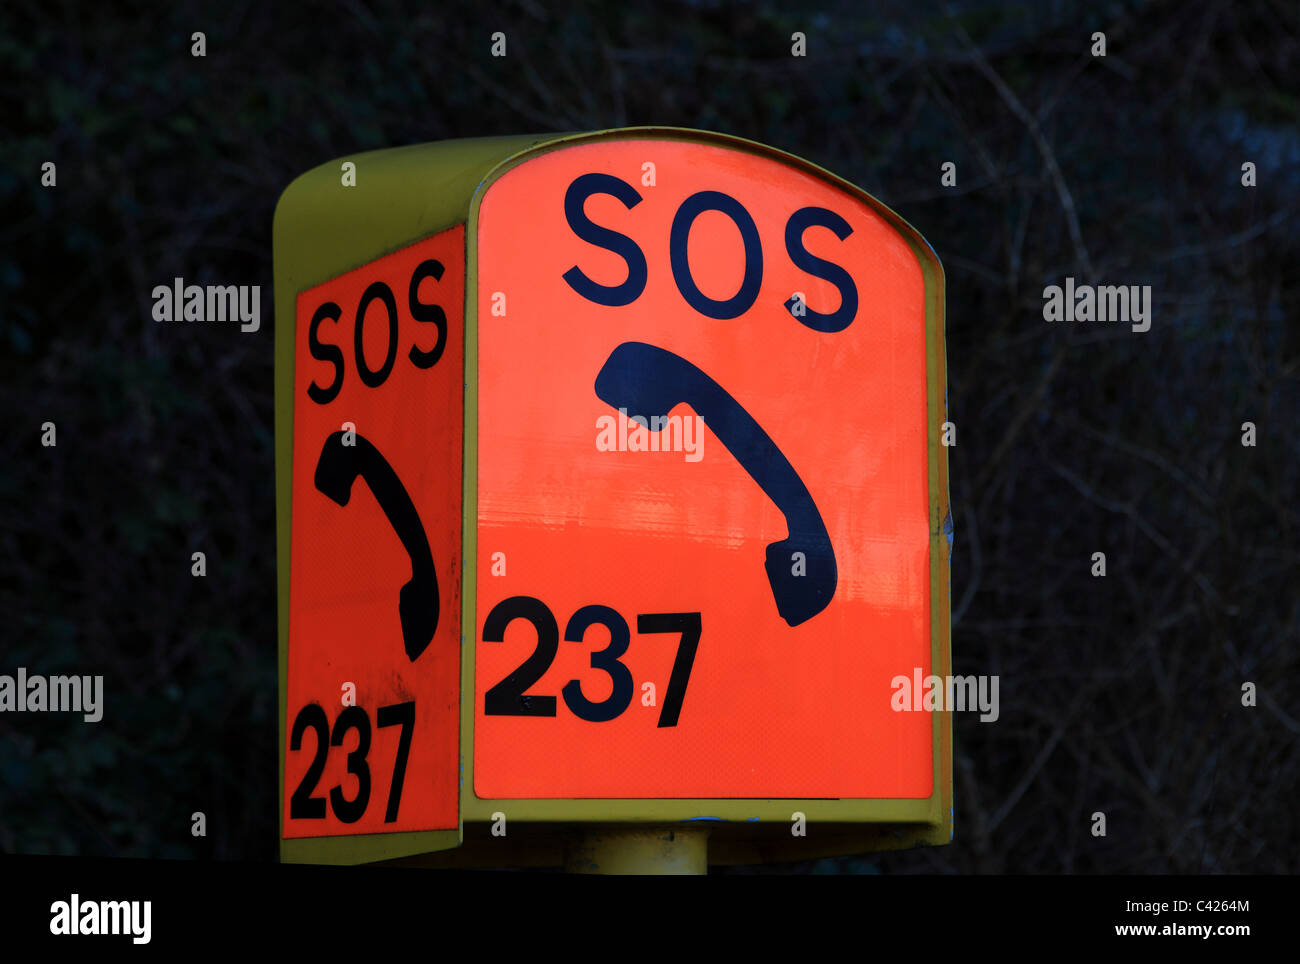 SOS road side telephone box - Stock Image